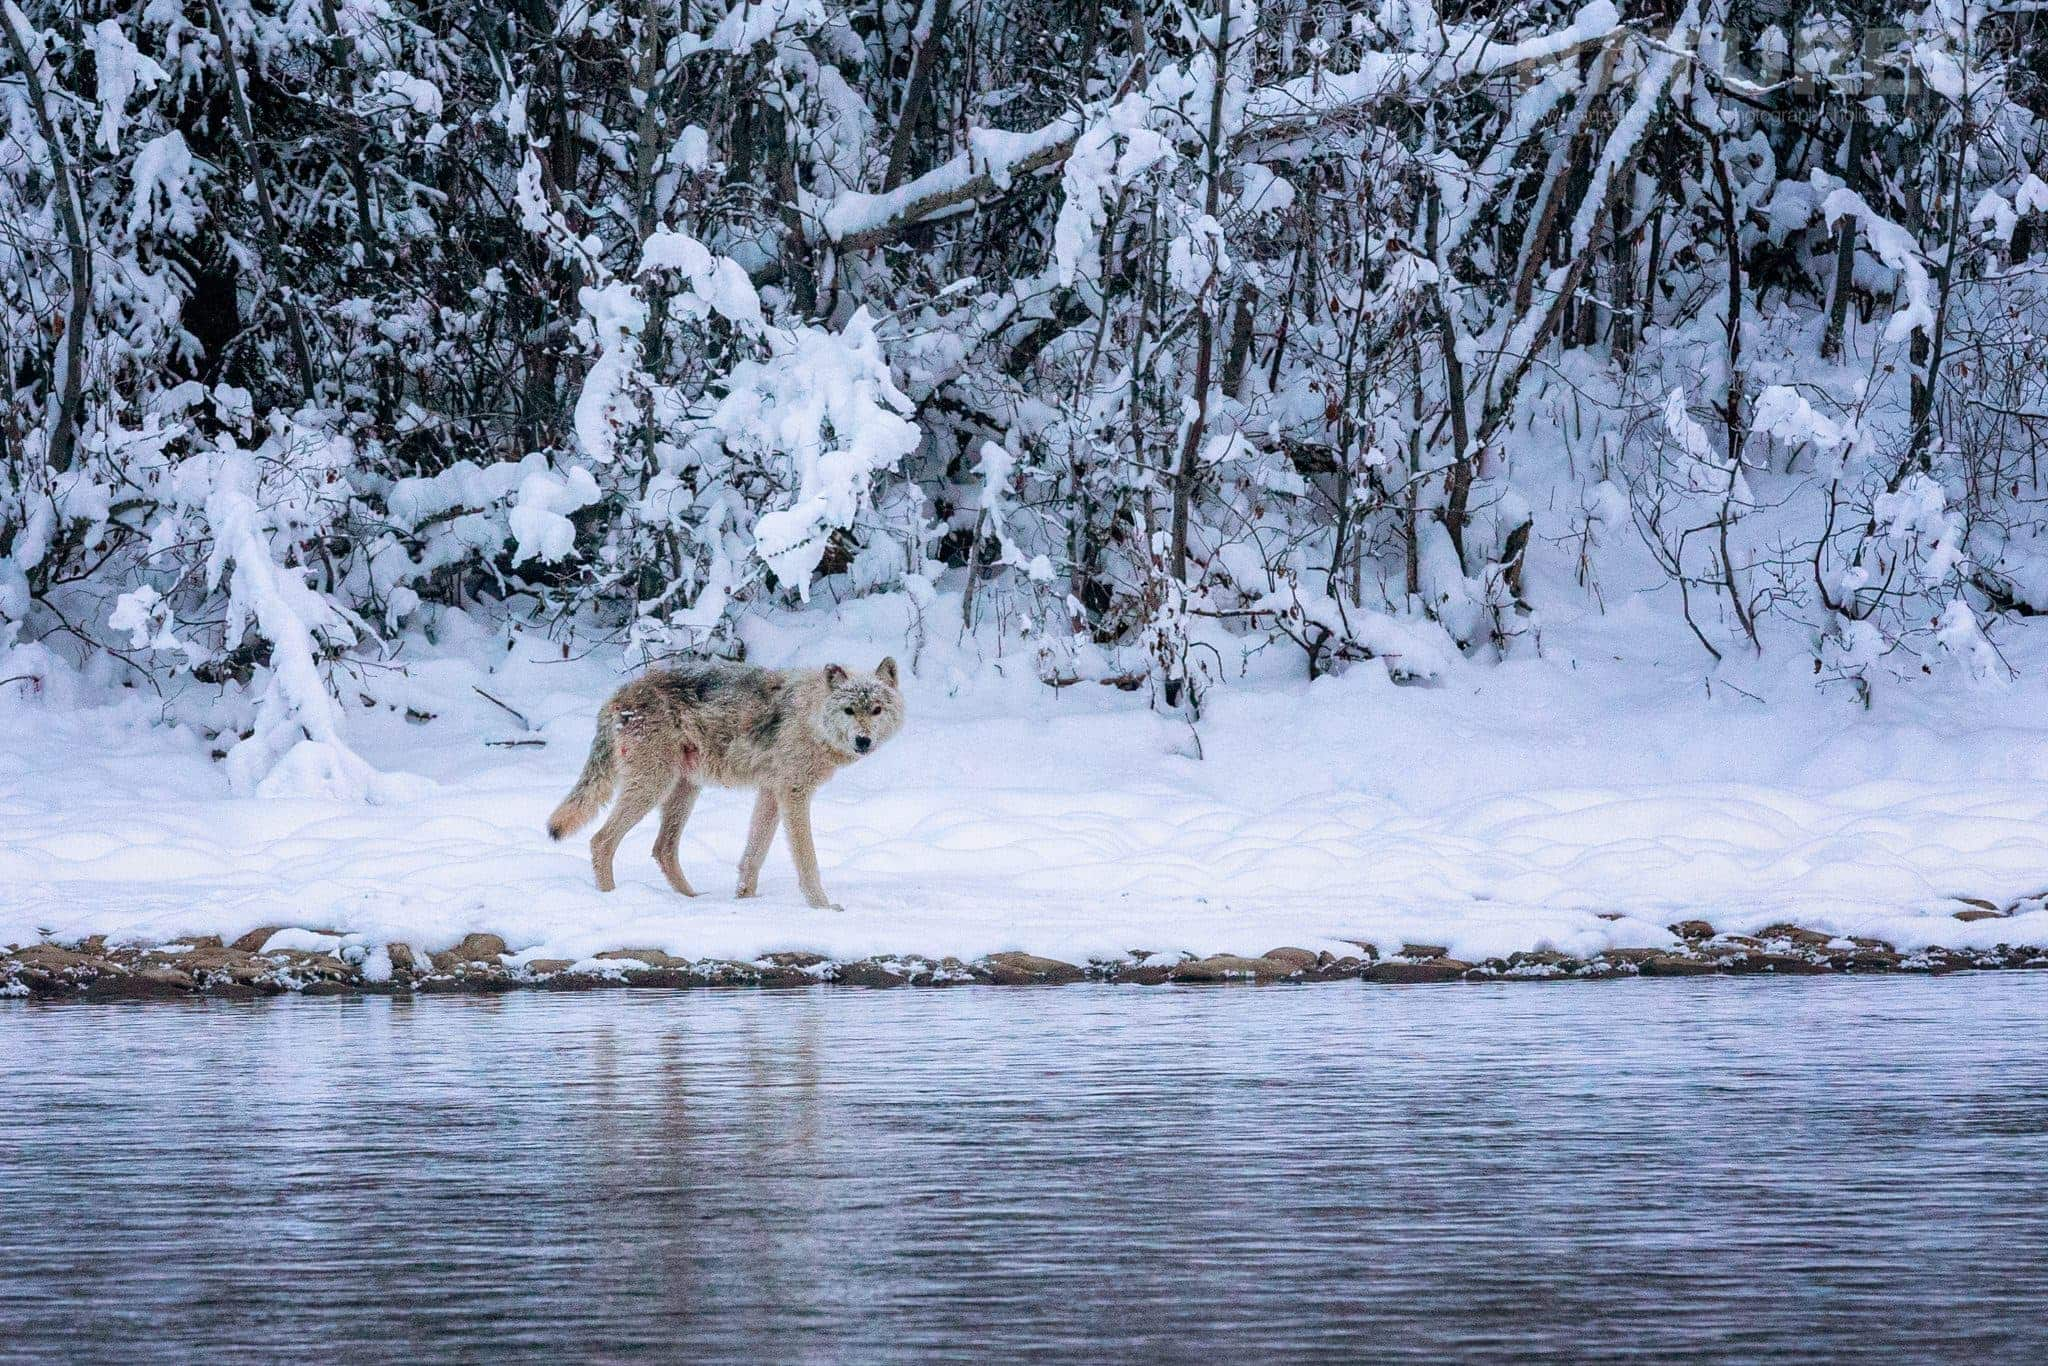 A Gray Wolf Looks Across The Creek   Captured During The Natureslens Ice Grizzlies Of The Yukon Photography Holiday